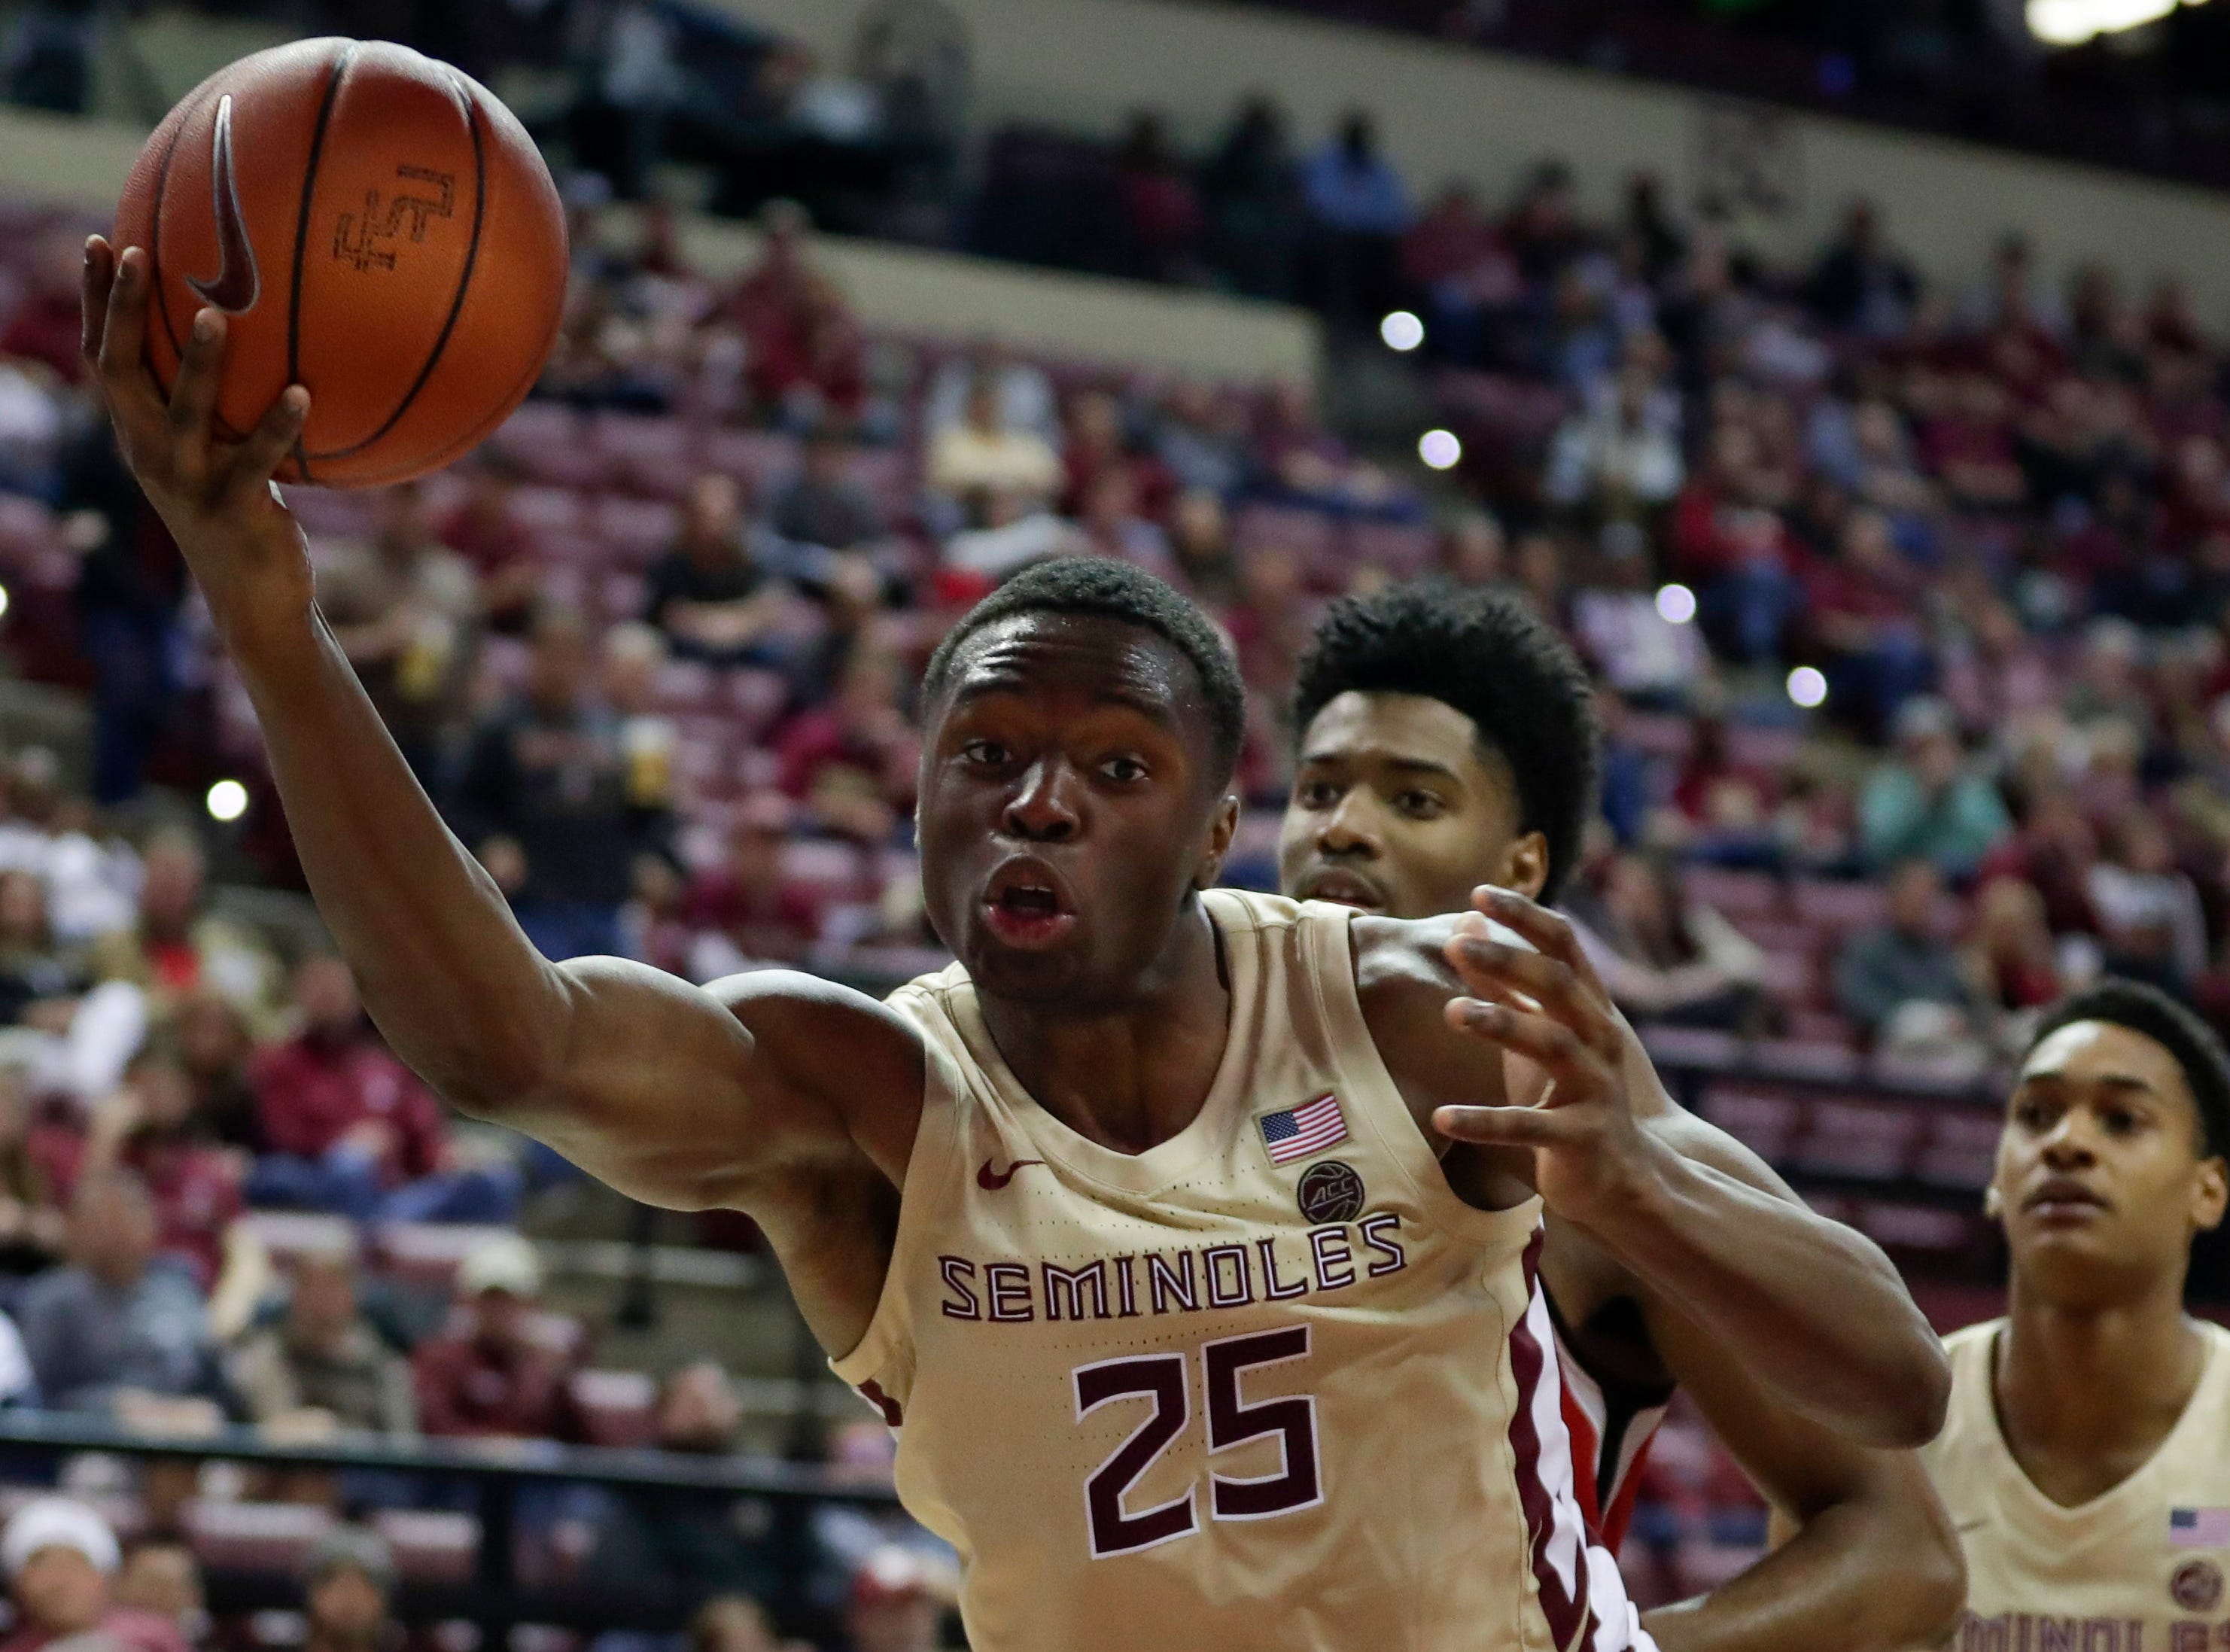 Florida State Seminoles forward Mfiondu Kabengele (25) tries to keep the ball inbounds during a game between Florida State University and Southeast Missouri State University at the Donald L. Tucker Civic Center Monday, Dec. 17, 2018.